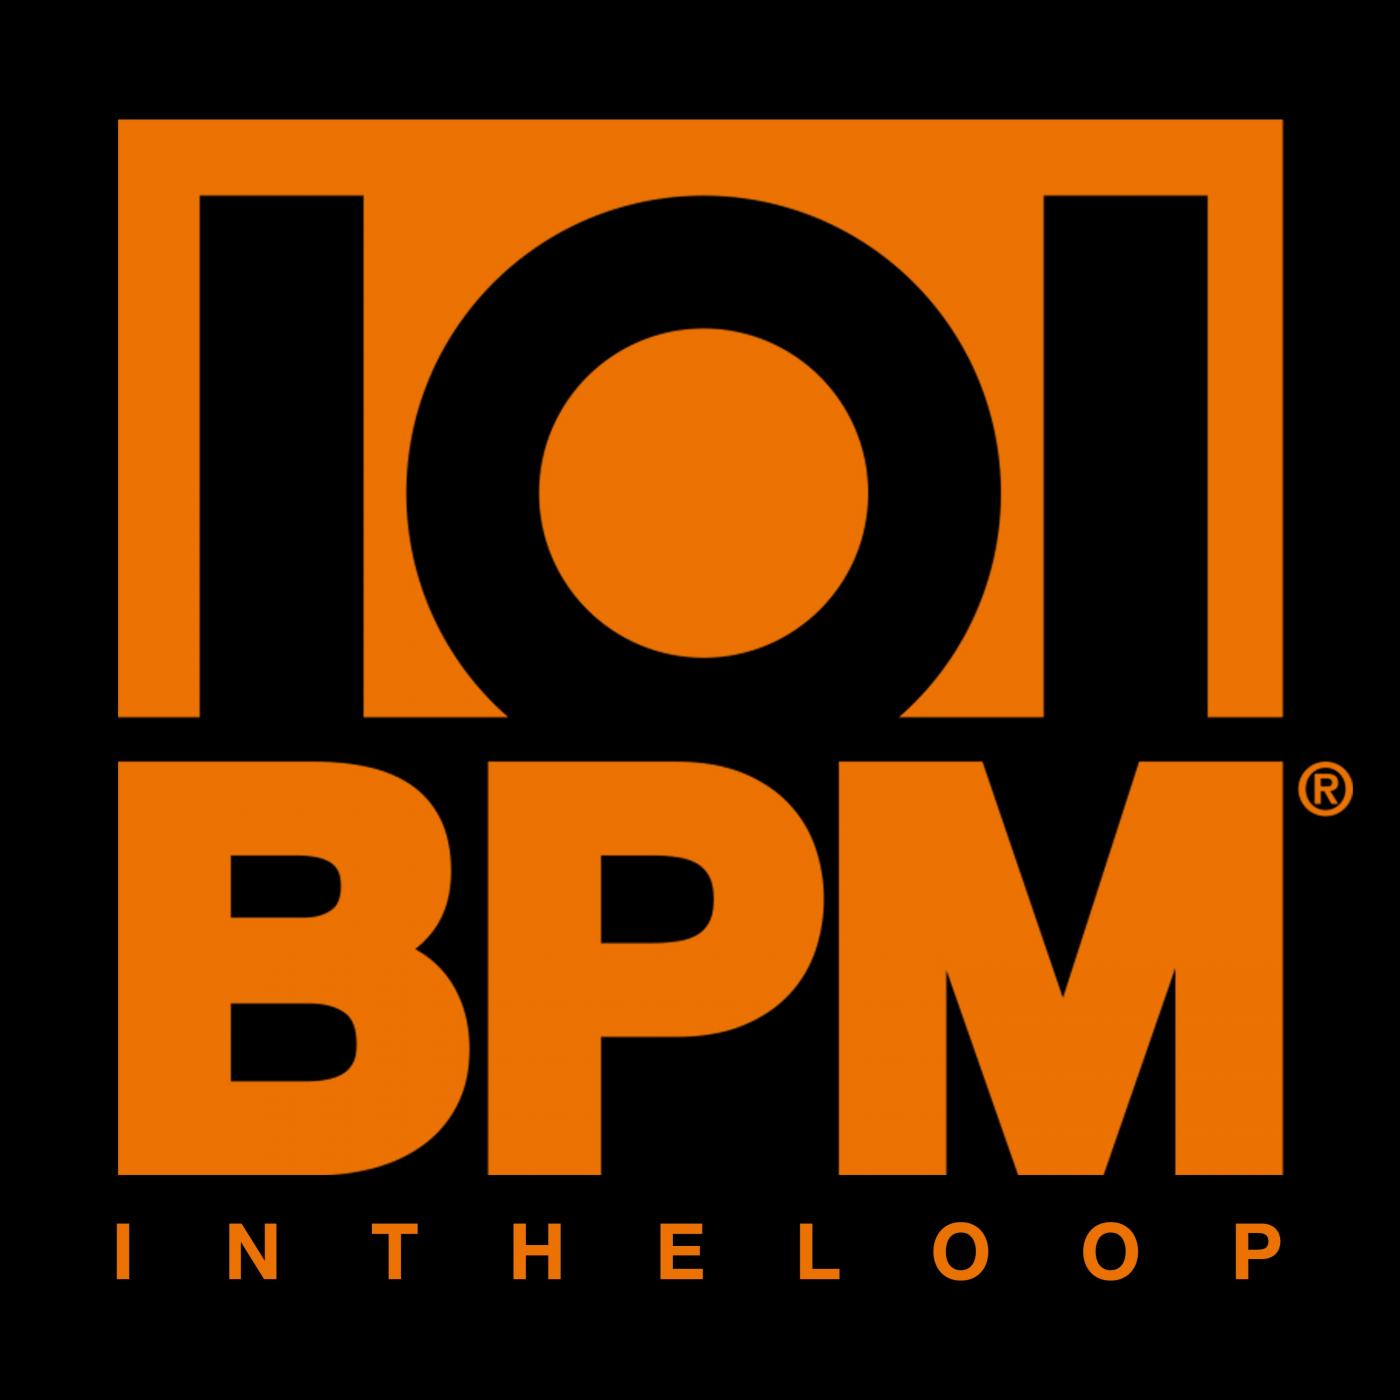 101BPM - INTHELOOP [Trap, Hip-Hop & Future Bass Music Show]